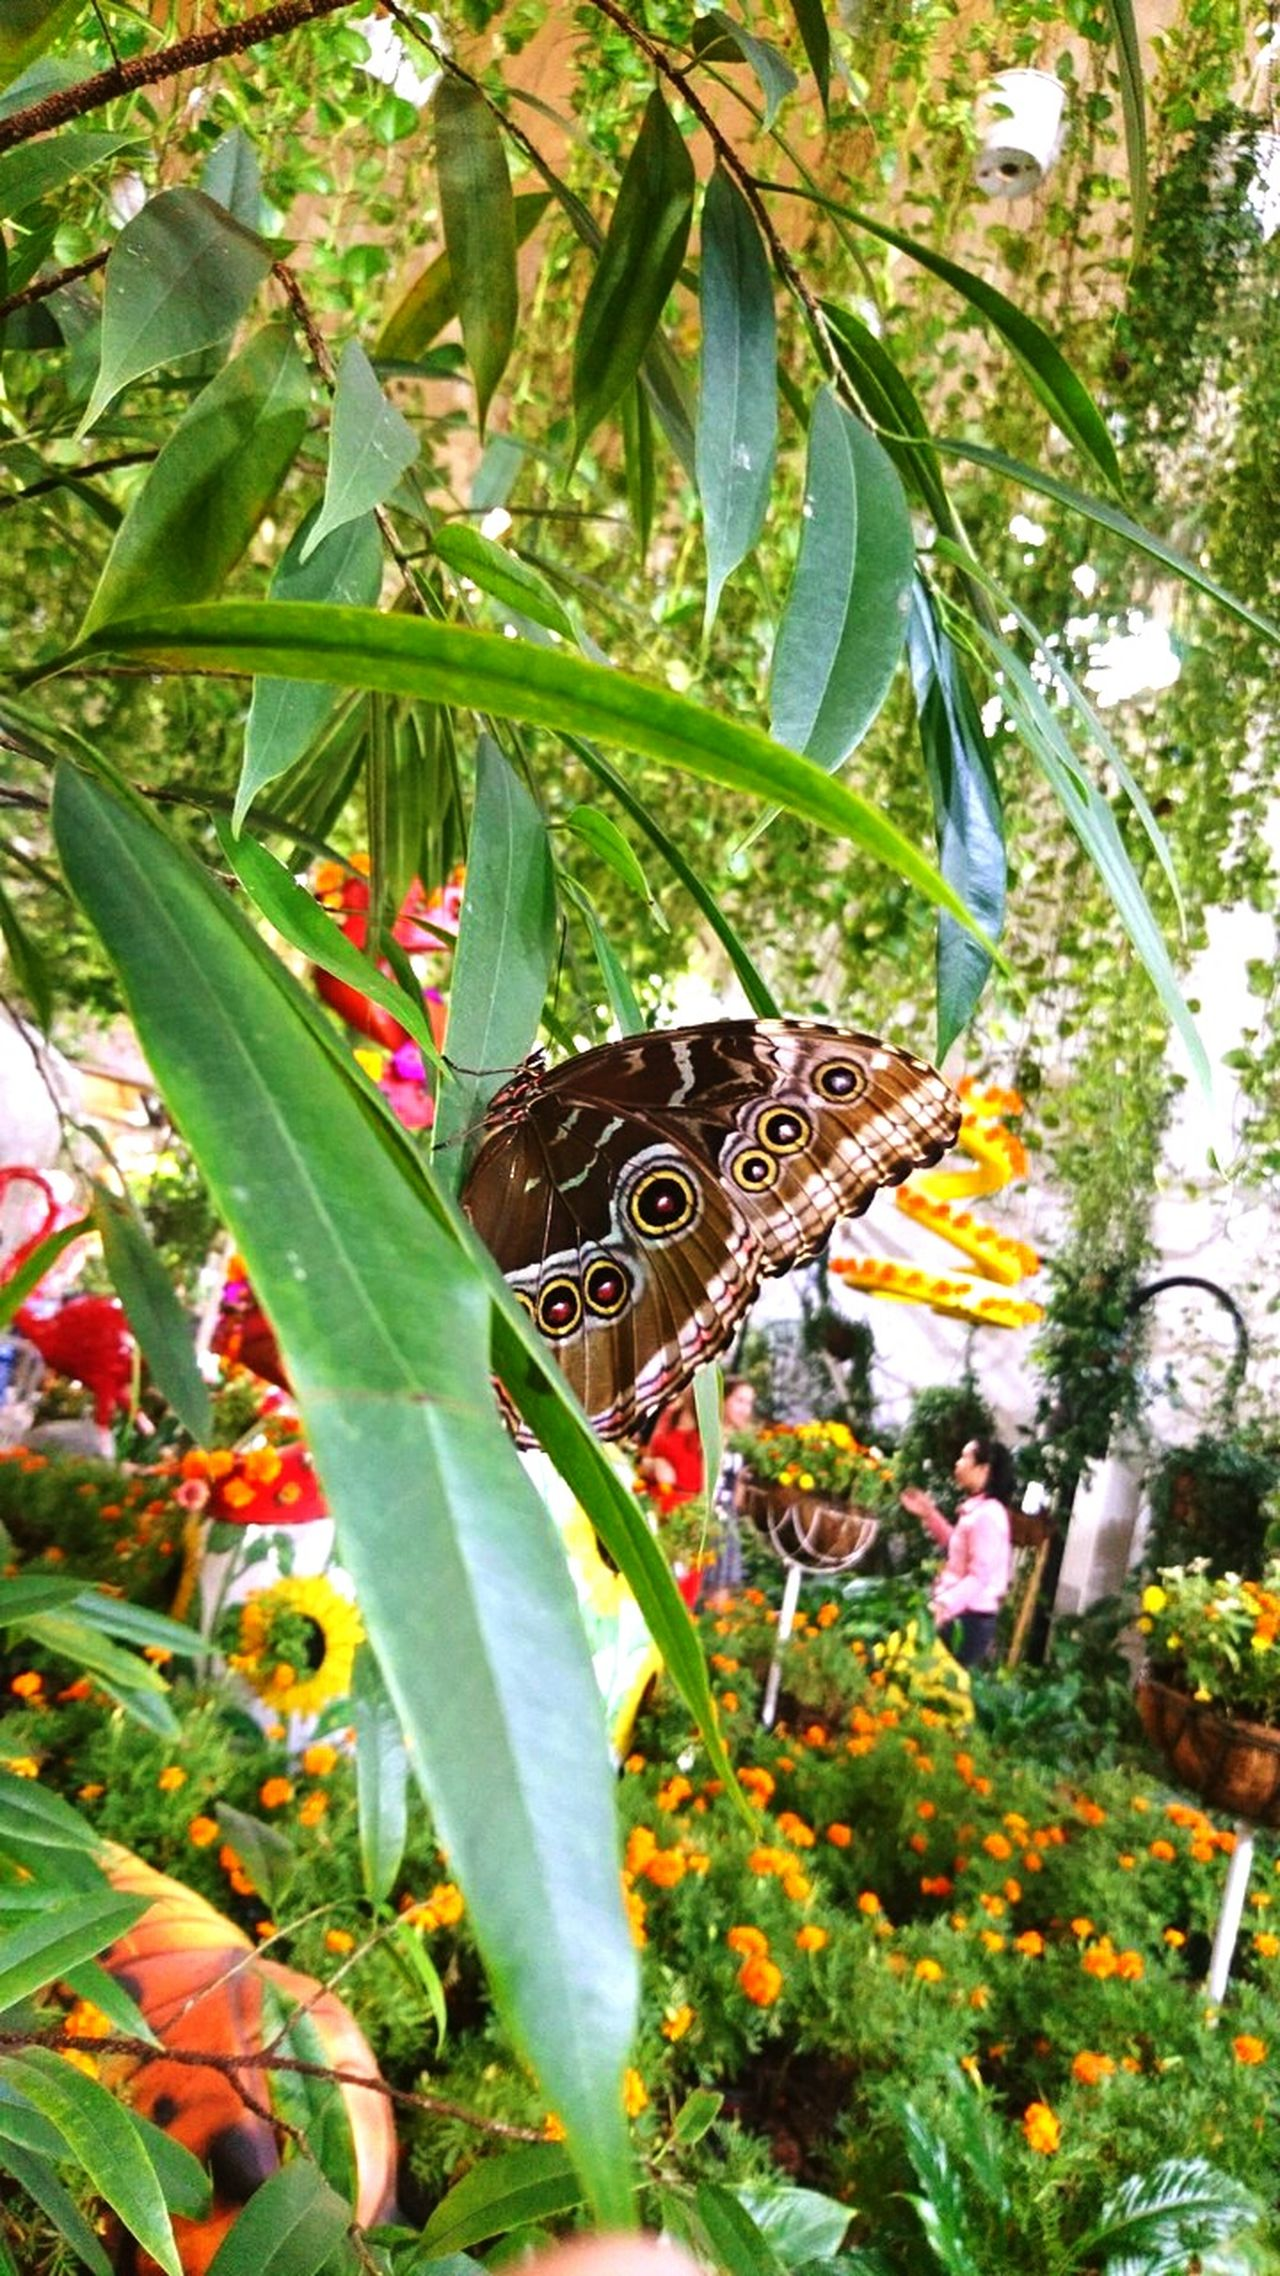 Beautiful Butterfly One Insect Nature Plant Animals In The Wild Beauty In Nature Outdoors Day Flower EyeEmNewHere Brown Color Textured  Butterfly ❤ On A Tree Freshness Pattern The Great Outdoors - 2017 EyeEm Awards EyeEmNewHere BYOPaper!